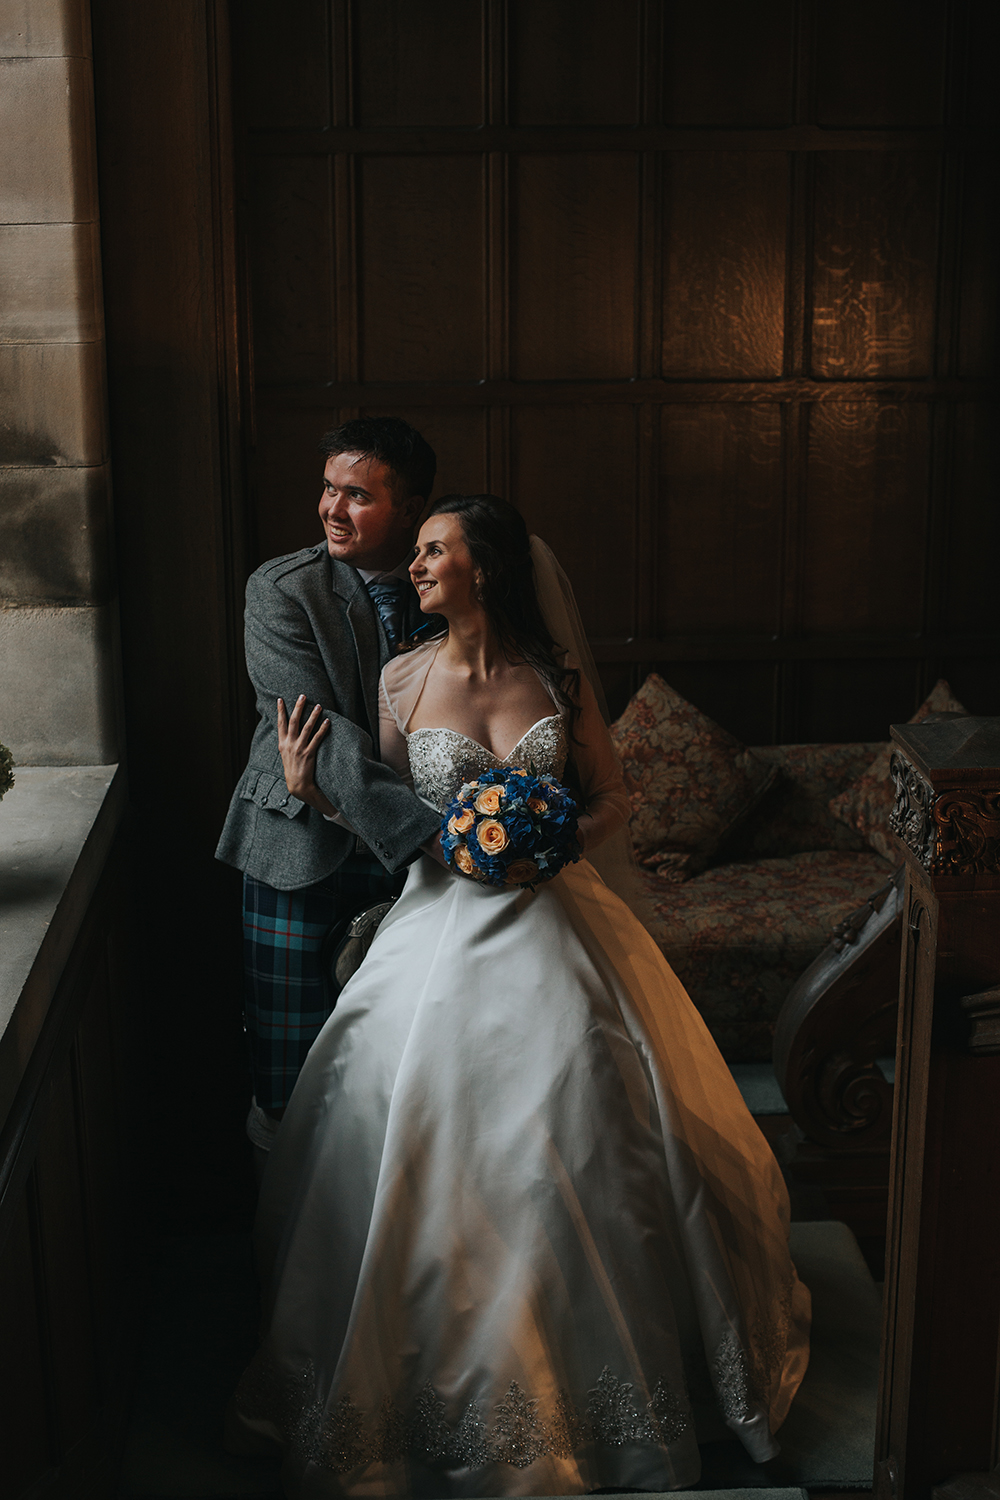 Rowallan Castle Wedding Photographer, In the Name of Love Photography 2017